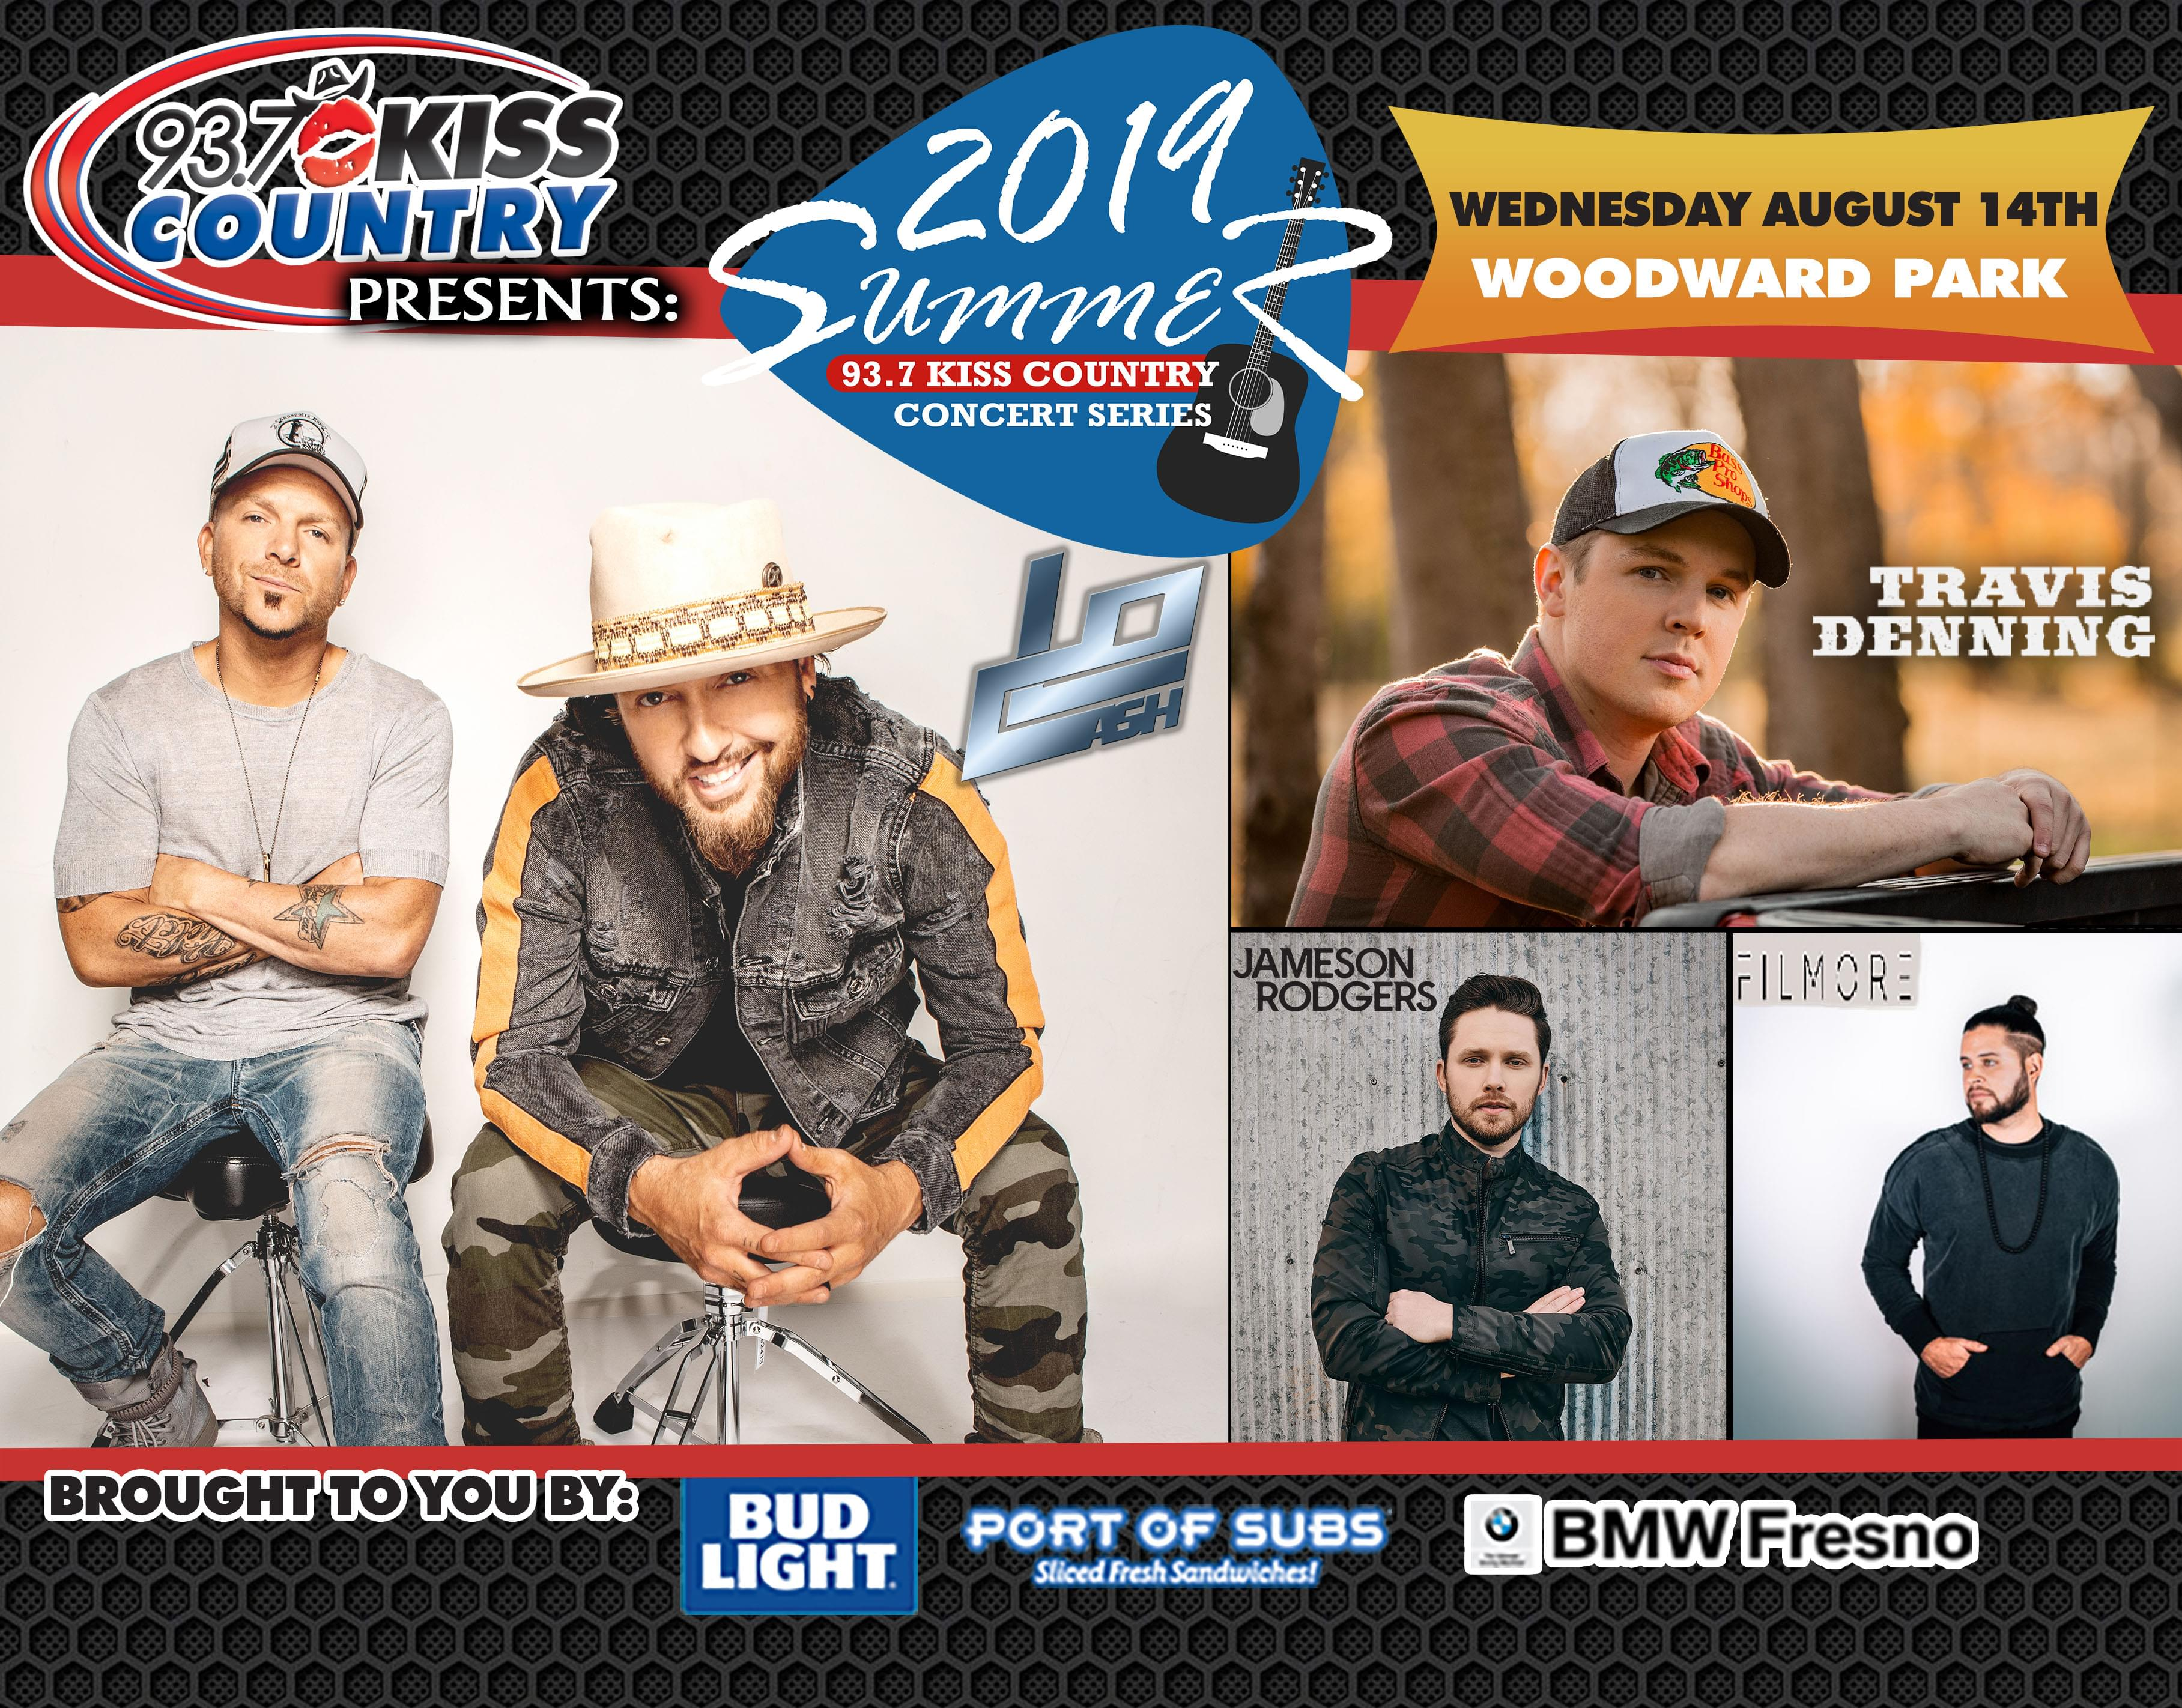 August 14:  Fourth Kiss Country Summer Concert of 2019